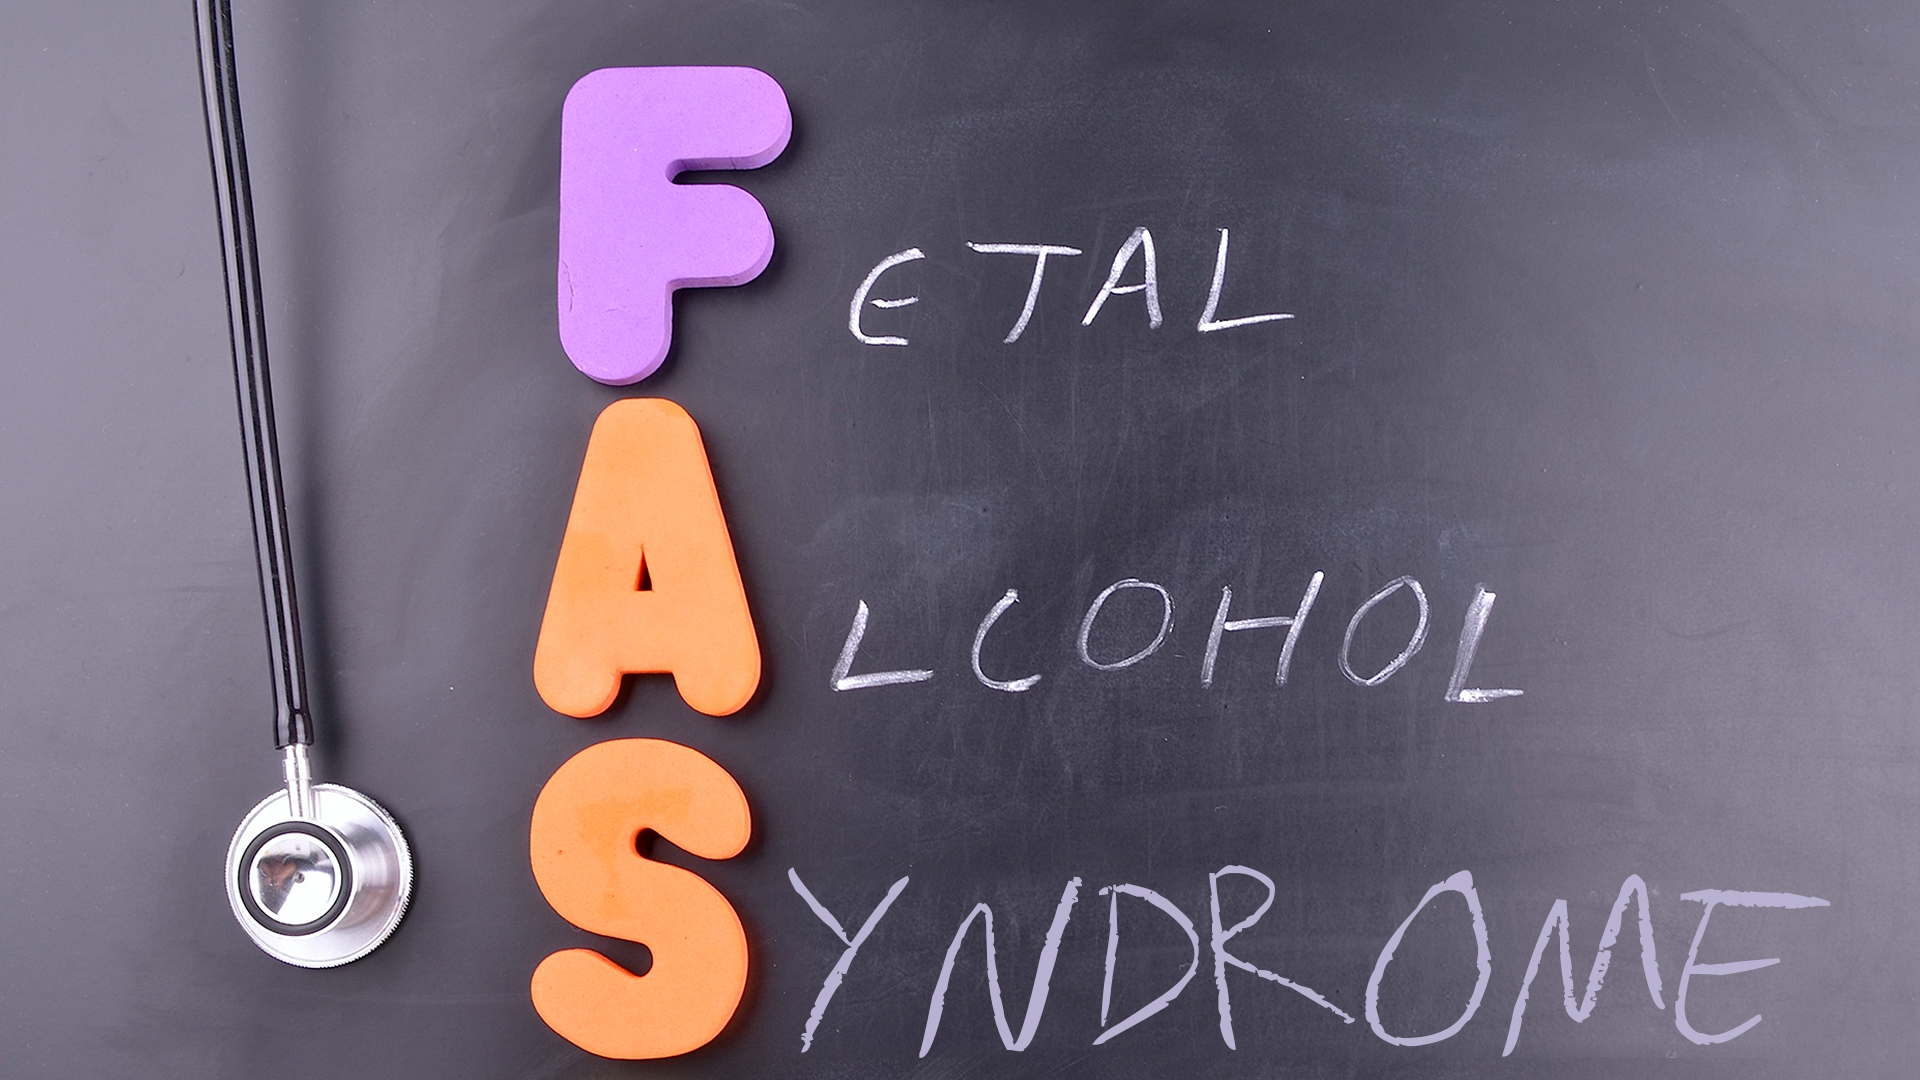 05.Fetal-Alcohol-Syndrome